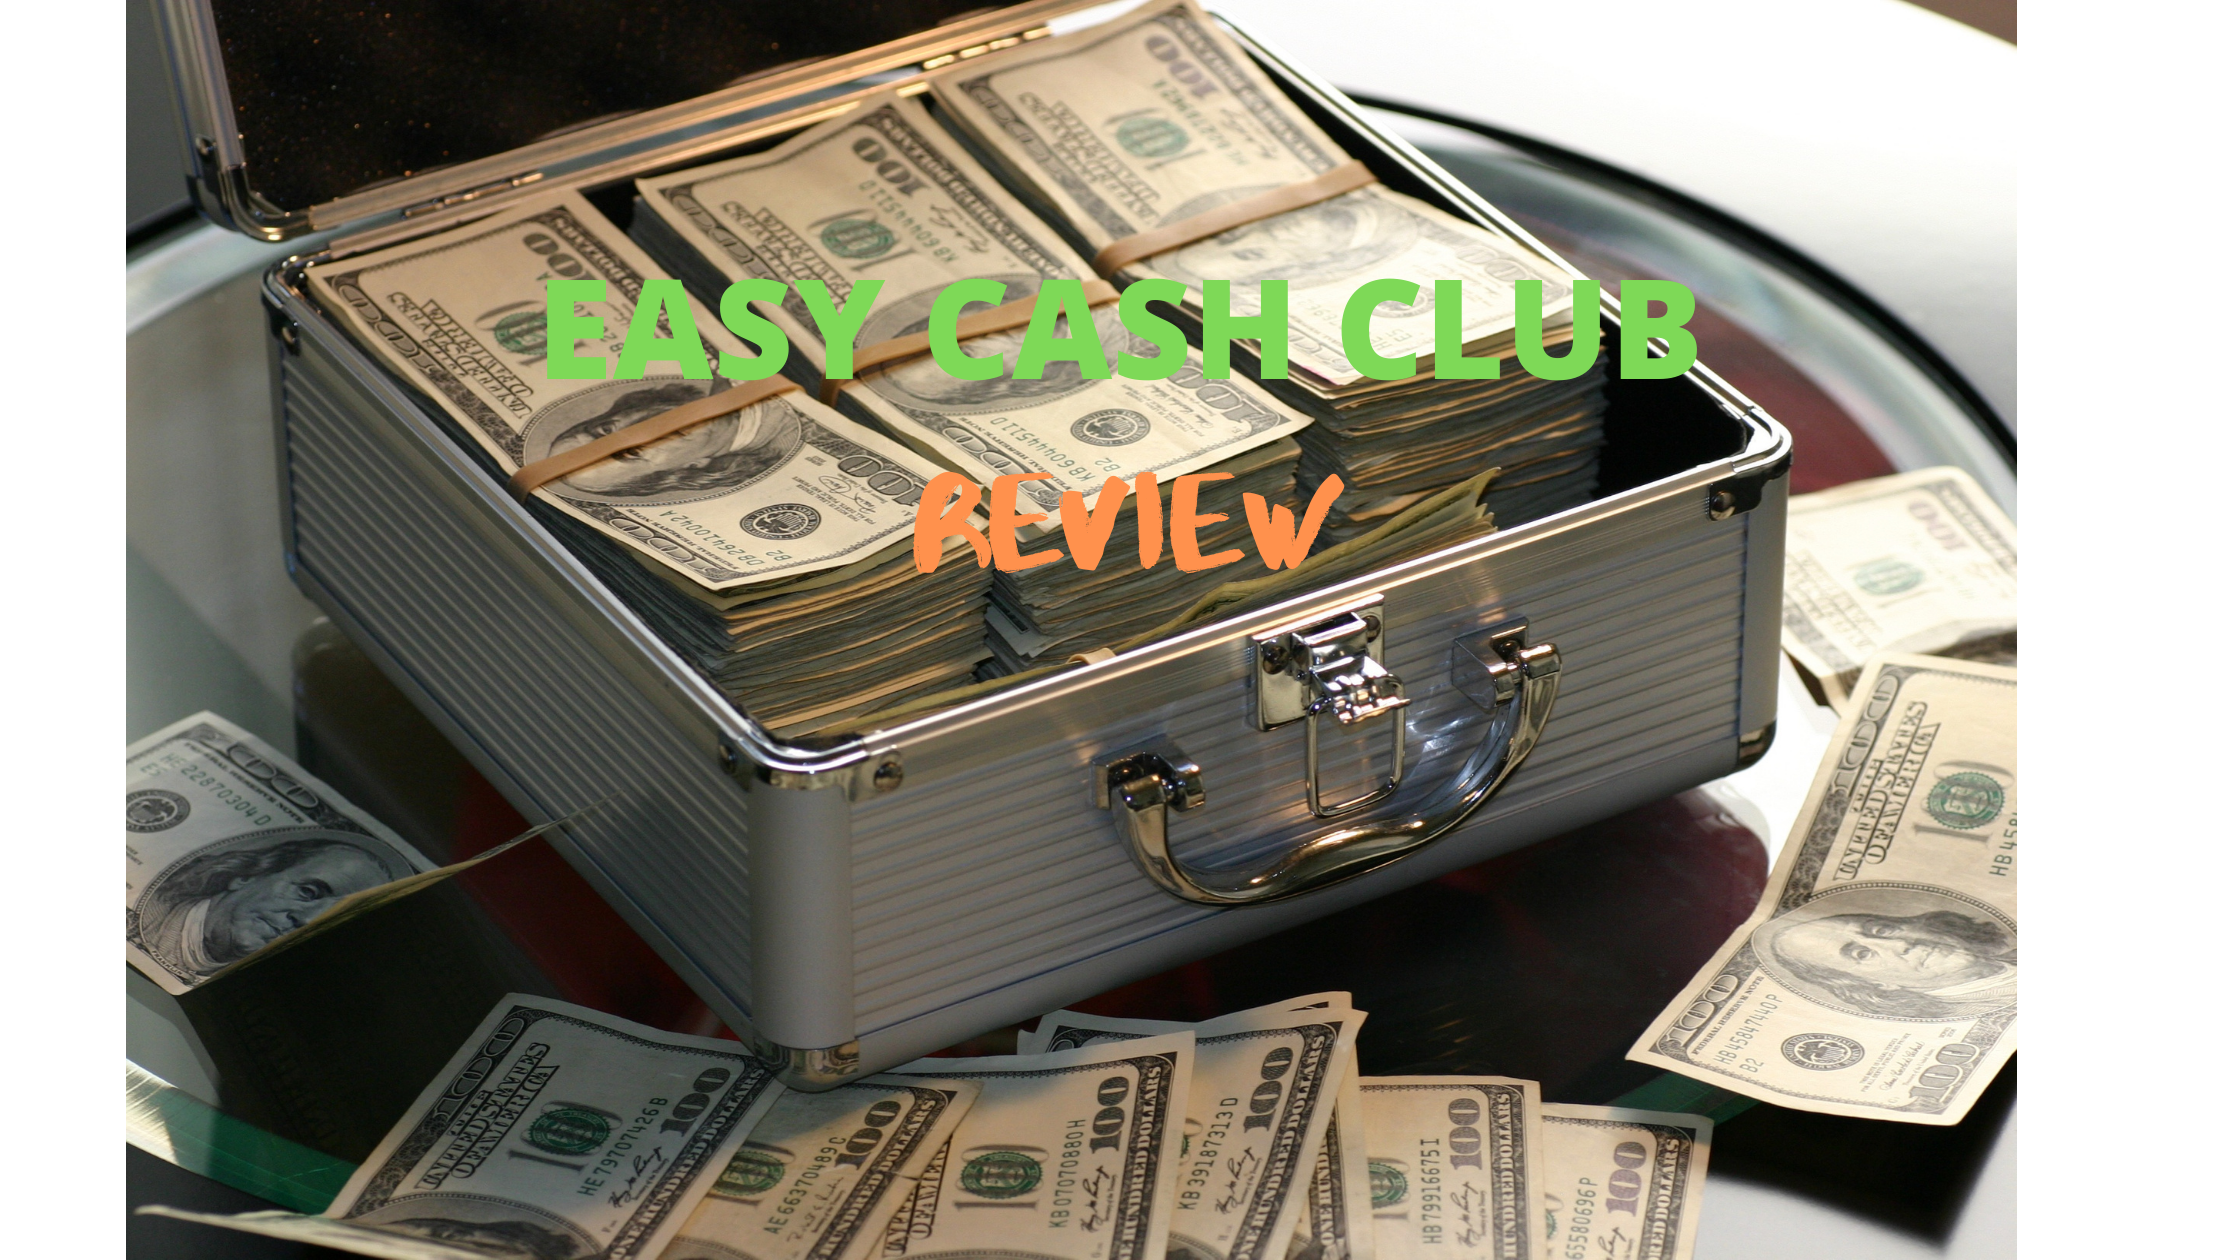 What Is Easy Cash Club About - Case of money